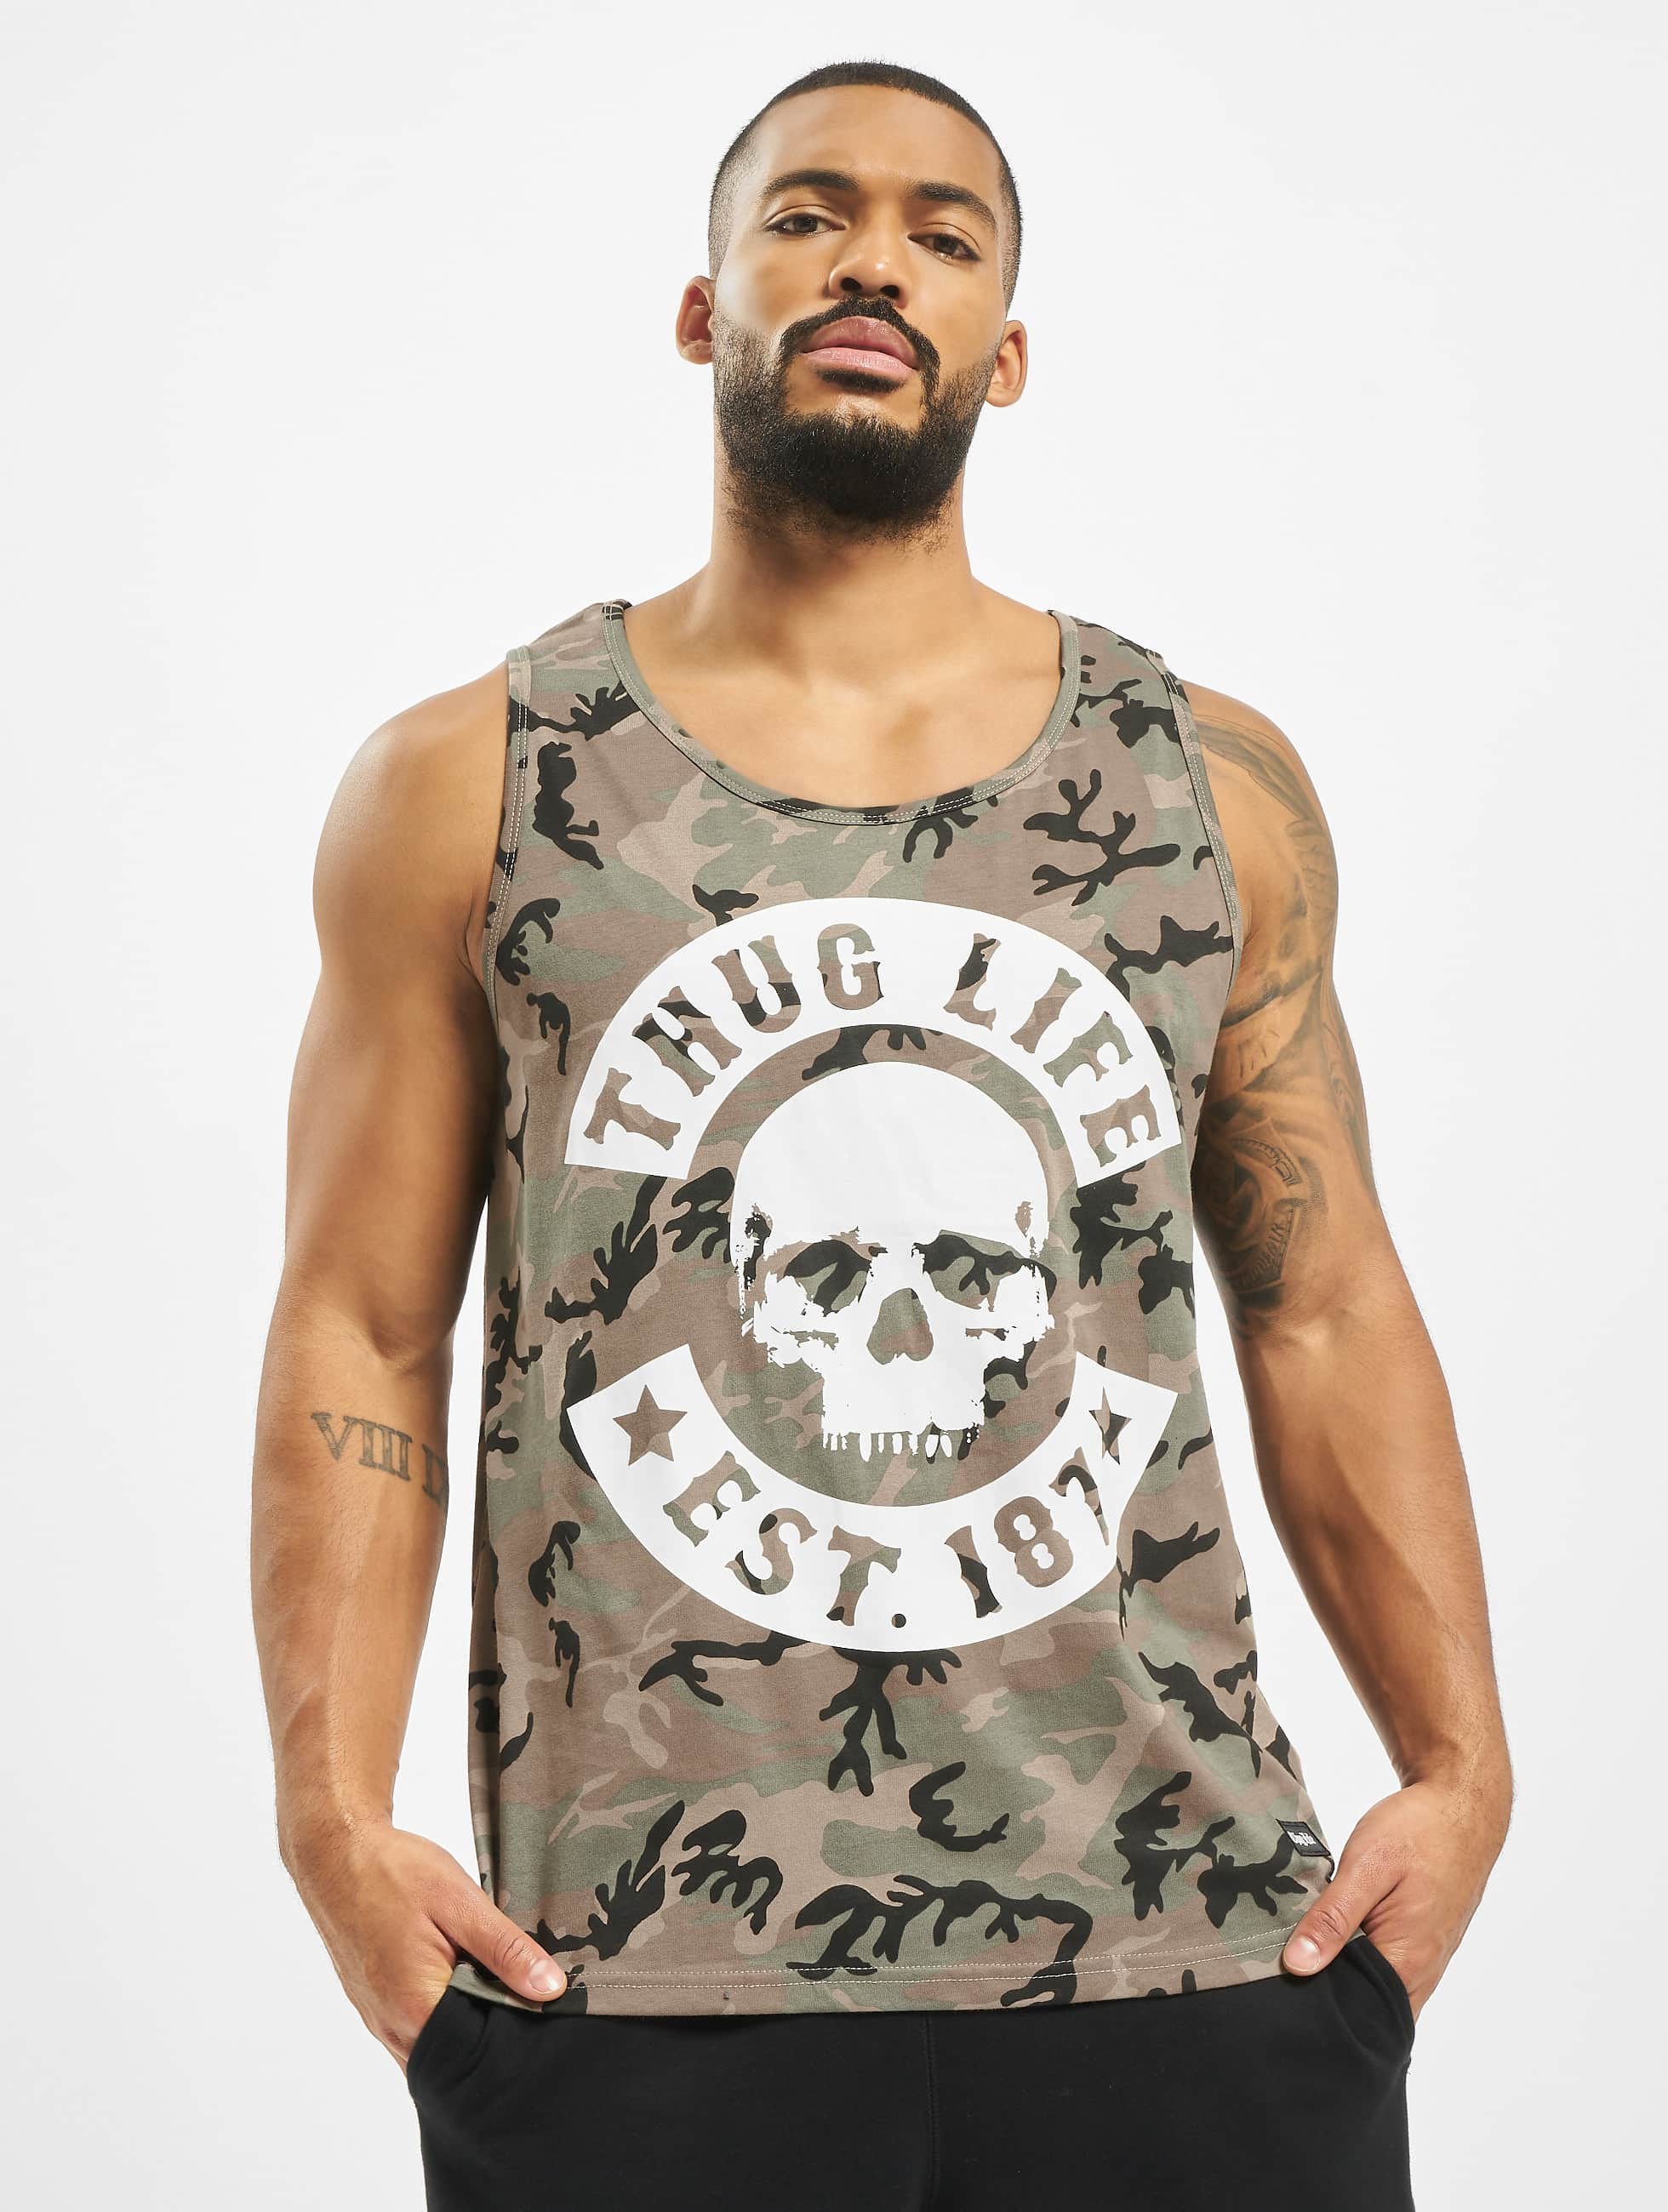 Thug Life / Tank Tops Teris in camouflage XL